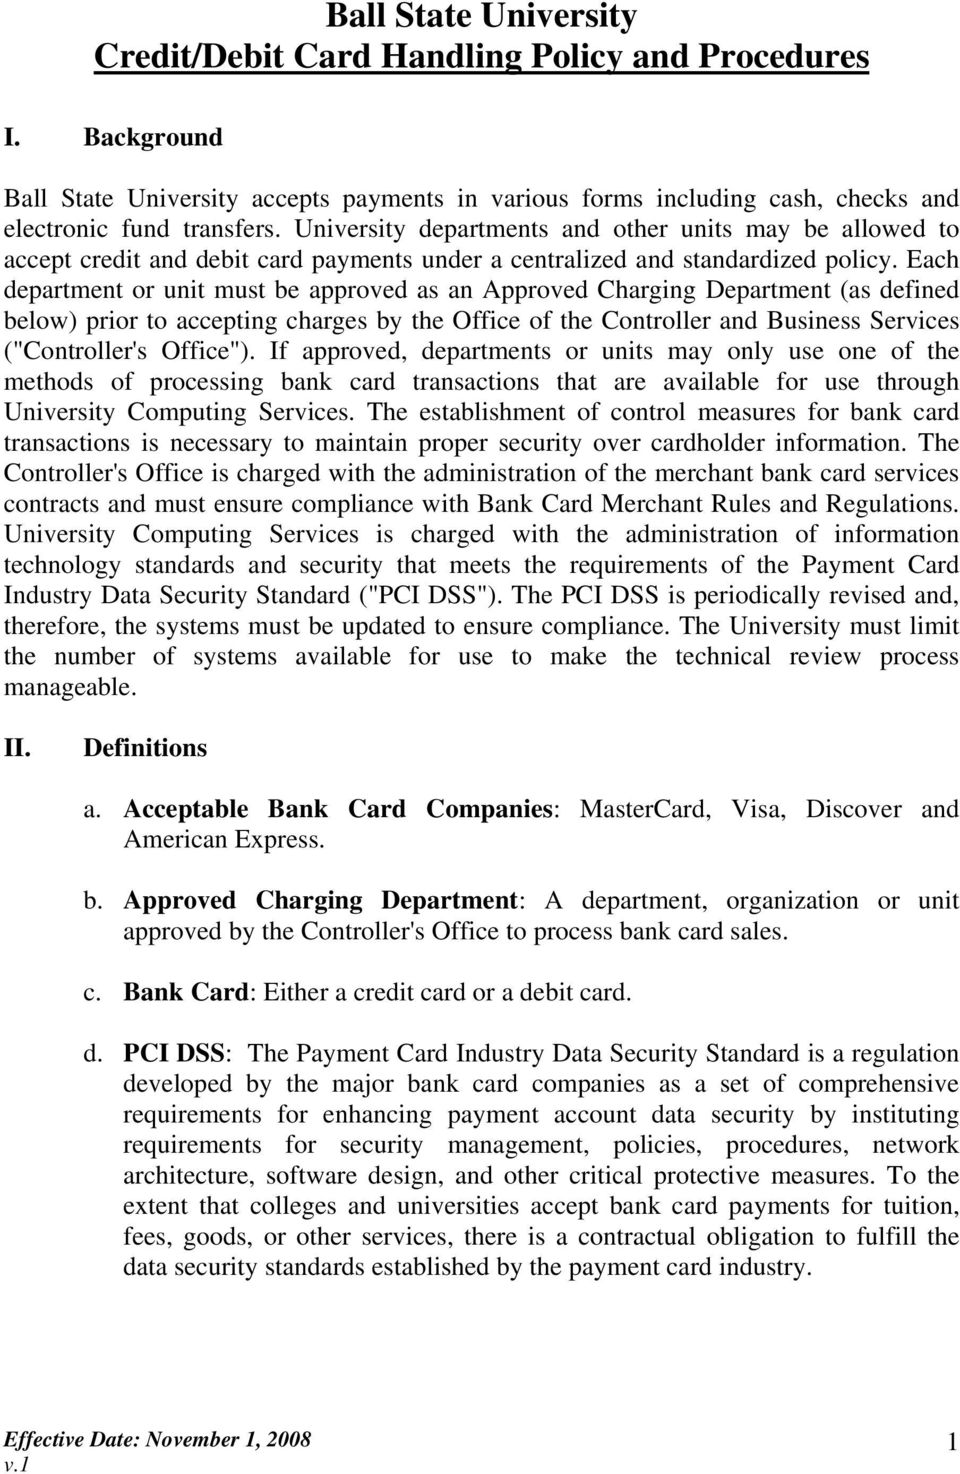 "Each department or unit must be approved as an Approved Charging Department (as defined below) prior to accepting charges by the Office of the Controller and Business Services (""Controller's Office"")."